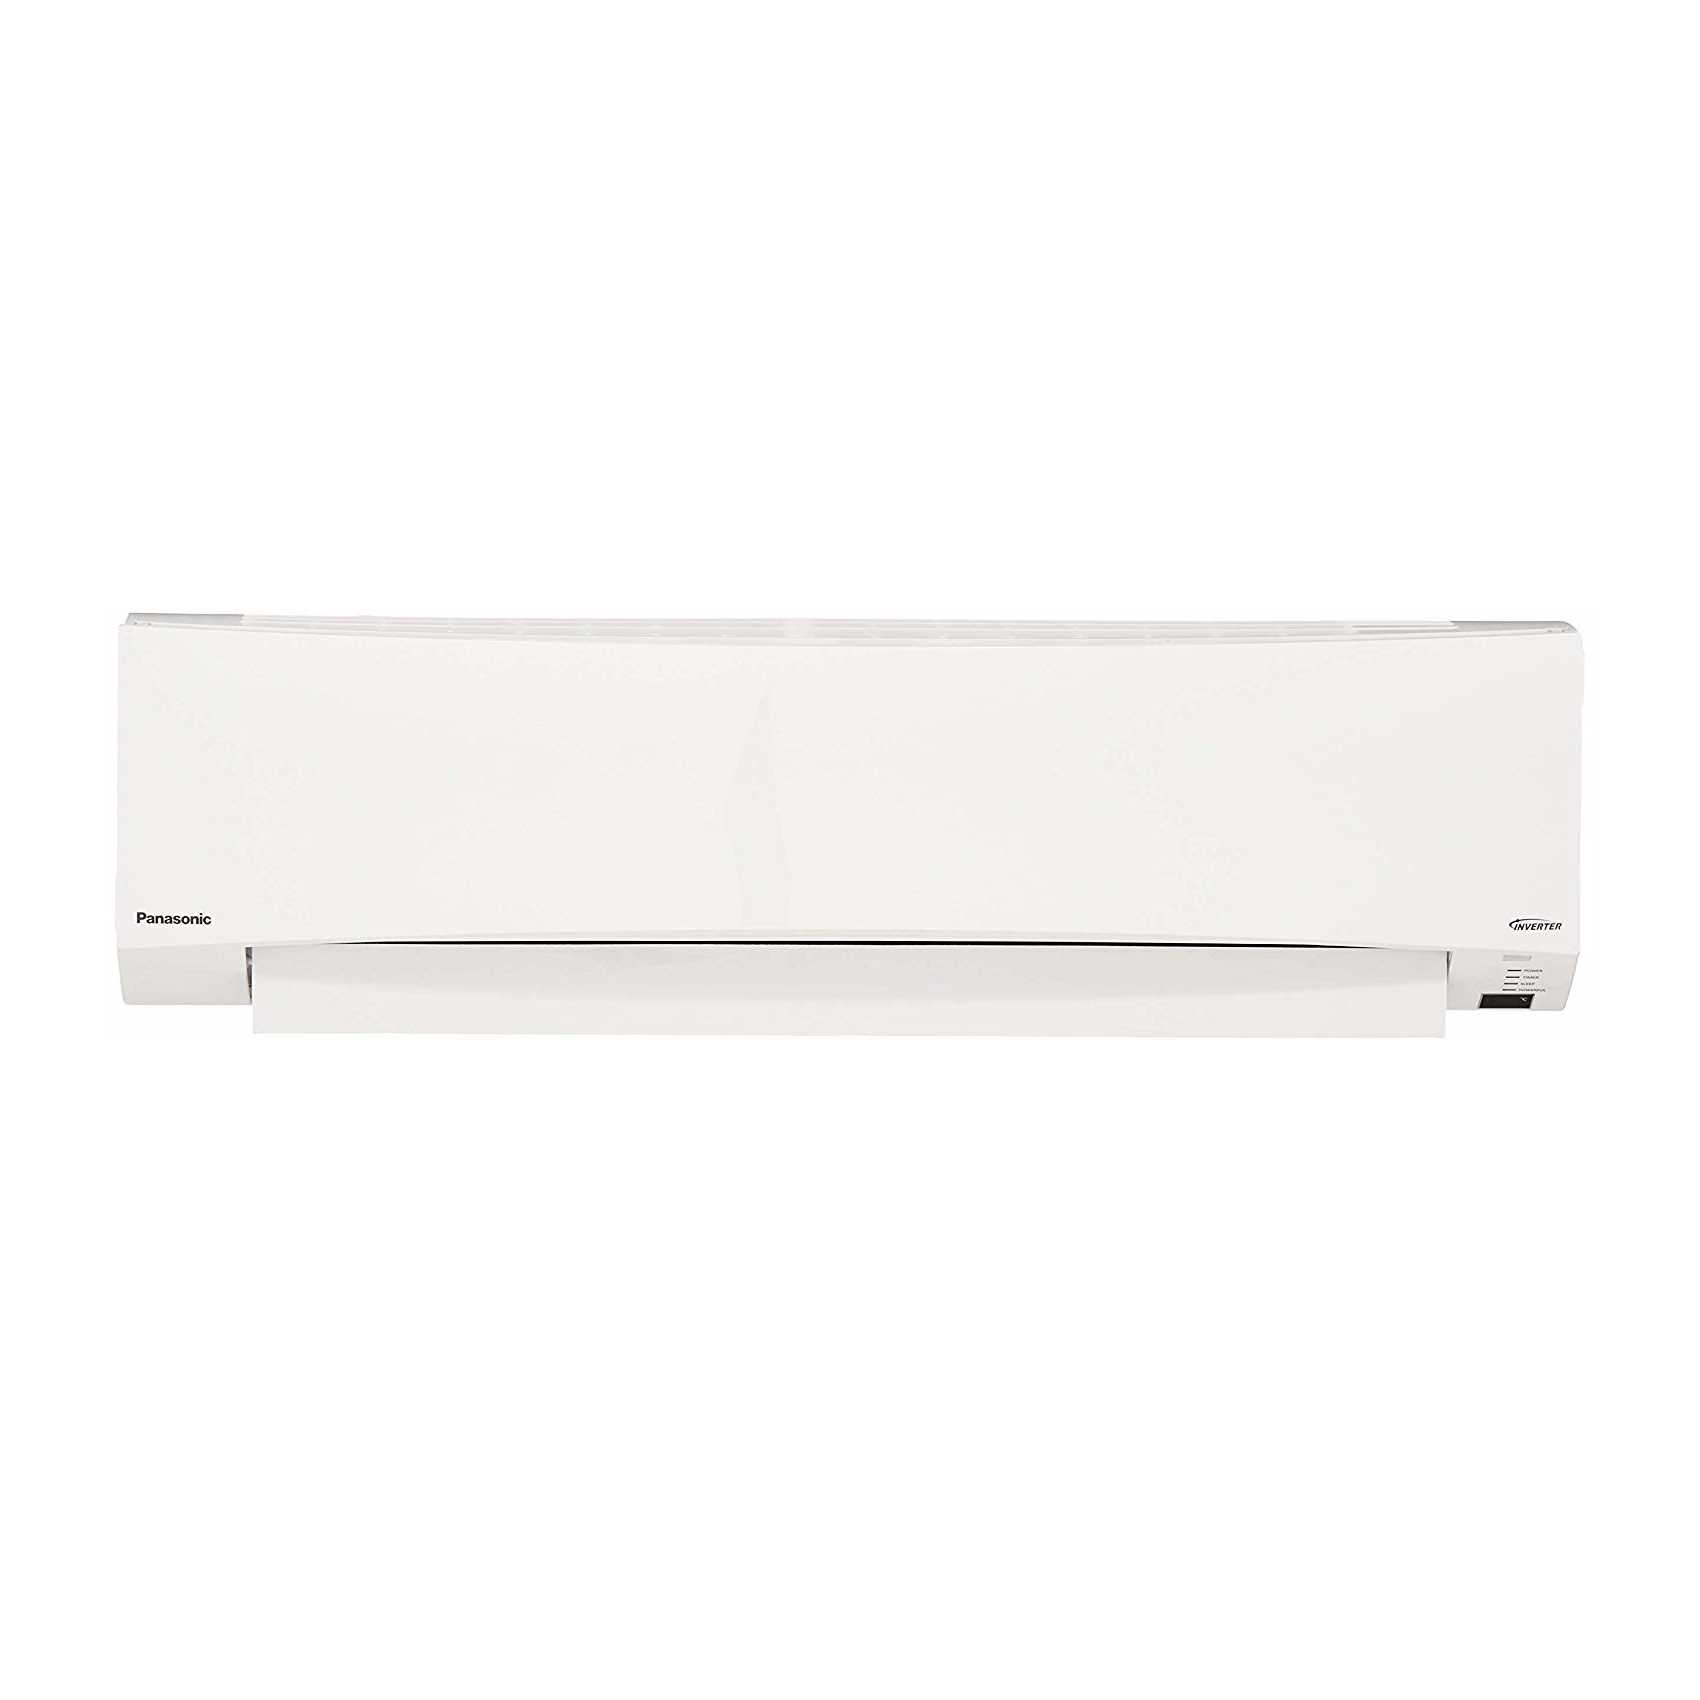 Panasonic CS CU NU18VKYW 1.5 Ton 5 Star Inverter Split AC